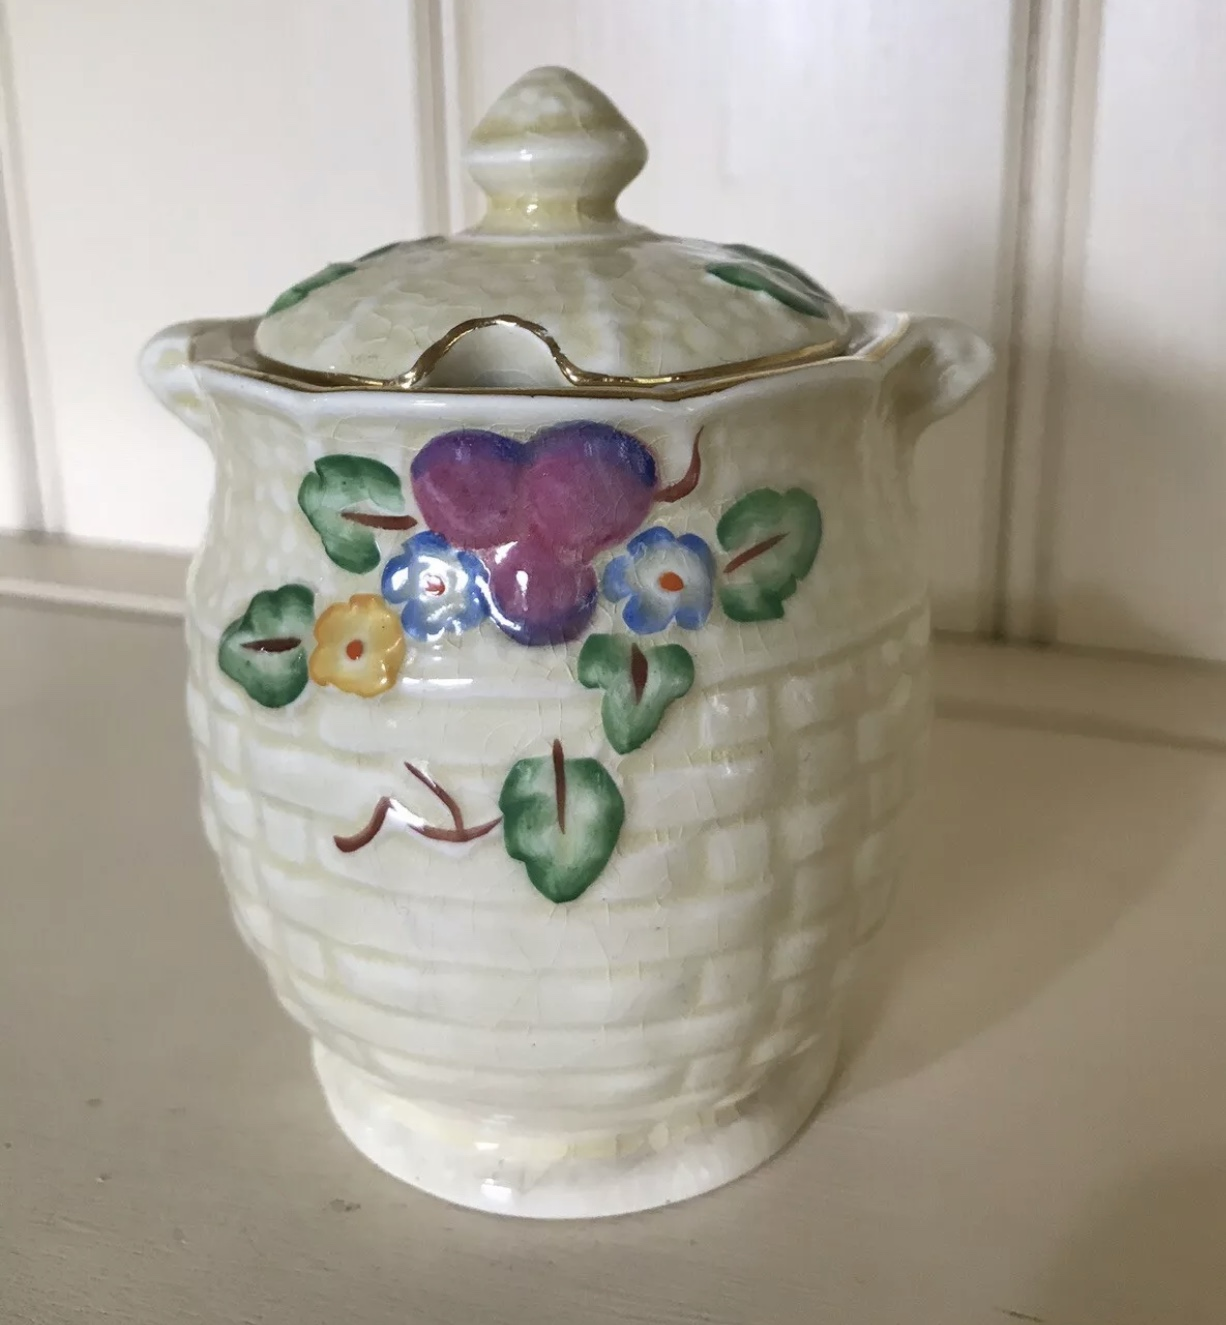 Vintage Crown Devon honeypot